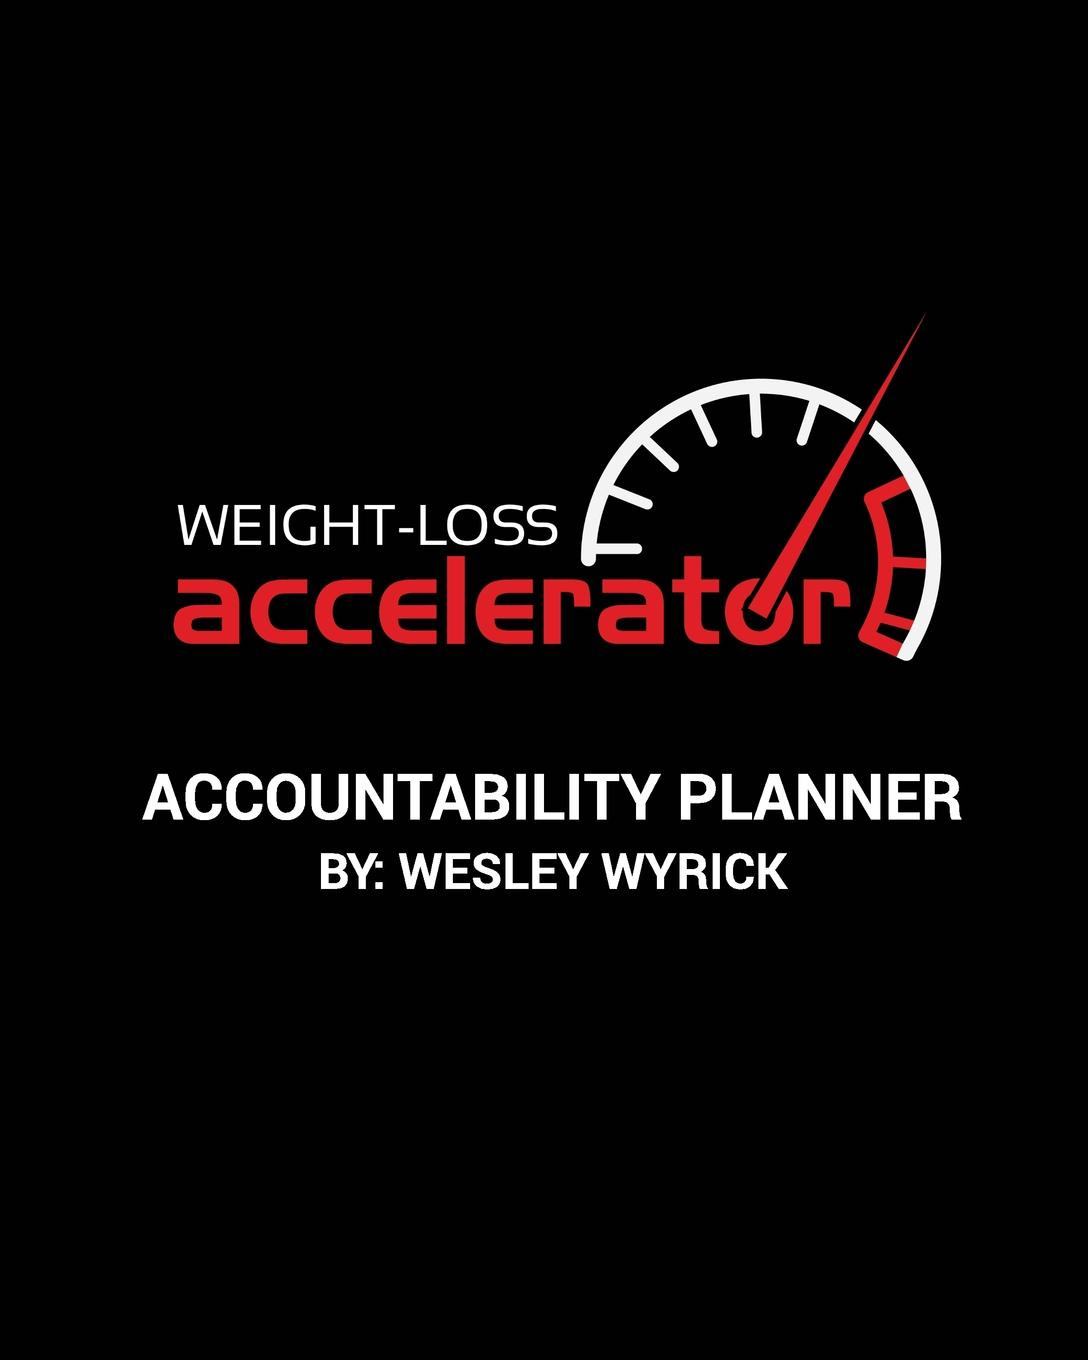 Wesley Wyrick Weight-Loss Accelerator Accountability Planner